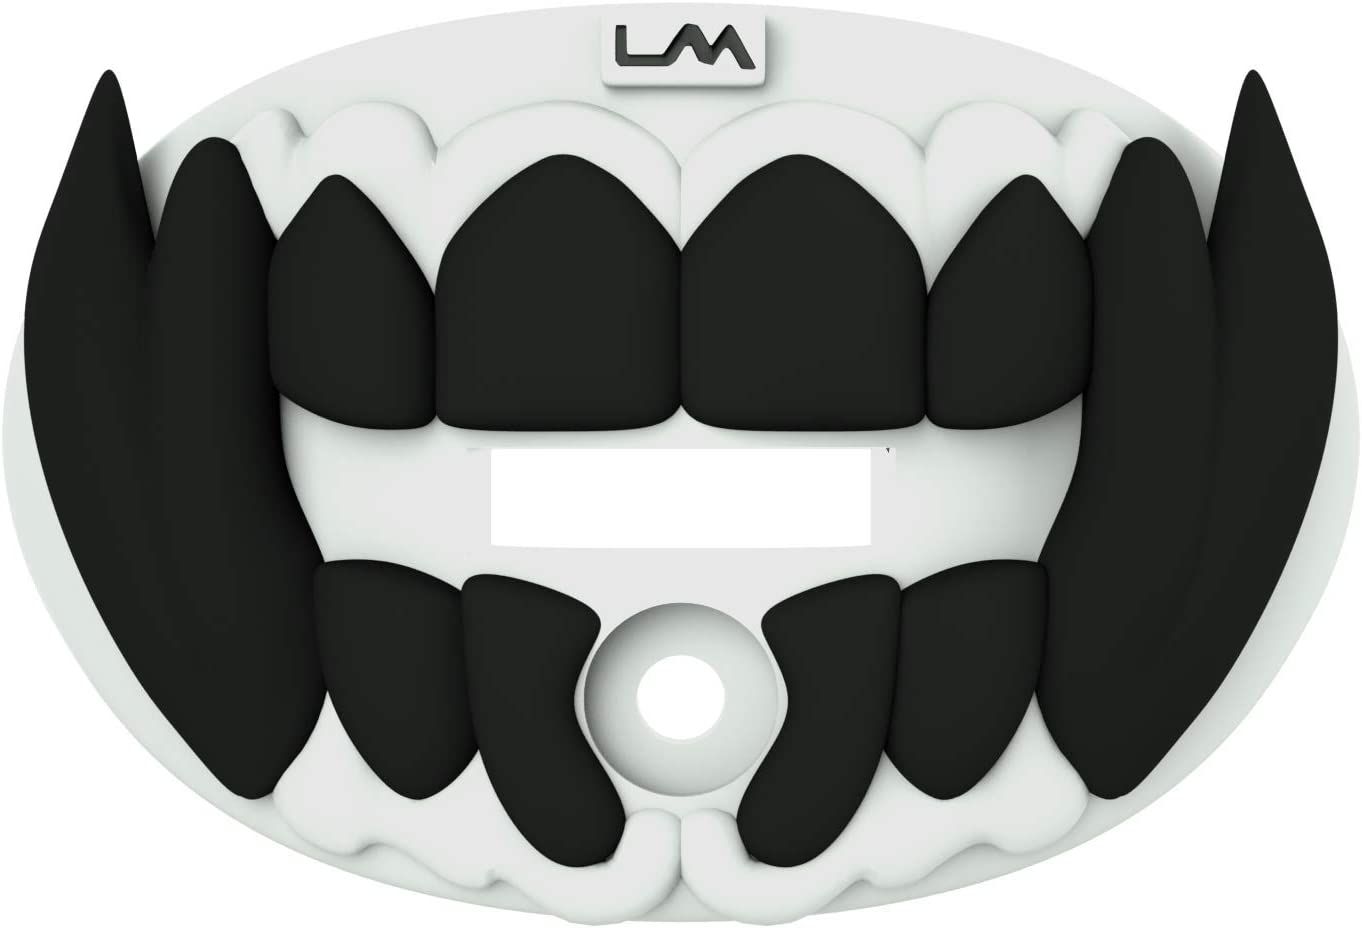 3D Beast Adult and Youth Mouth Guard Pacifier Lip and Teeth Protector Maximum Air Flow Mouth Guards Loudmouth Football Mouth Guard White and Black Mouth Piece for Sports